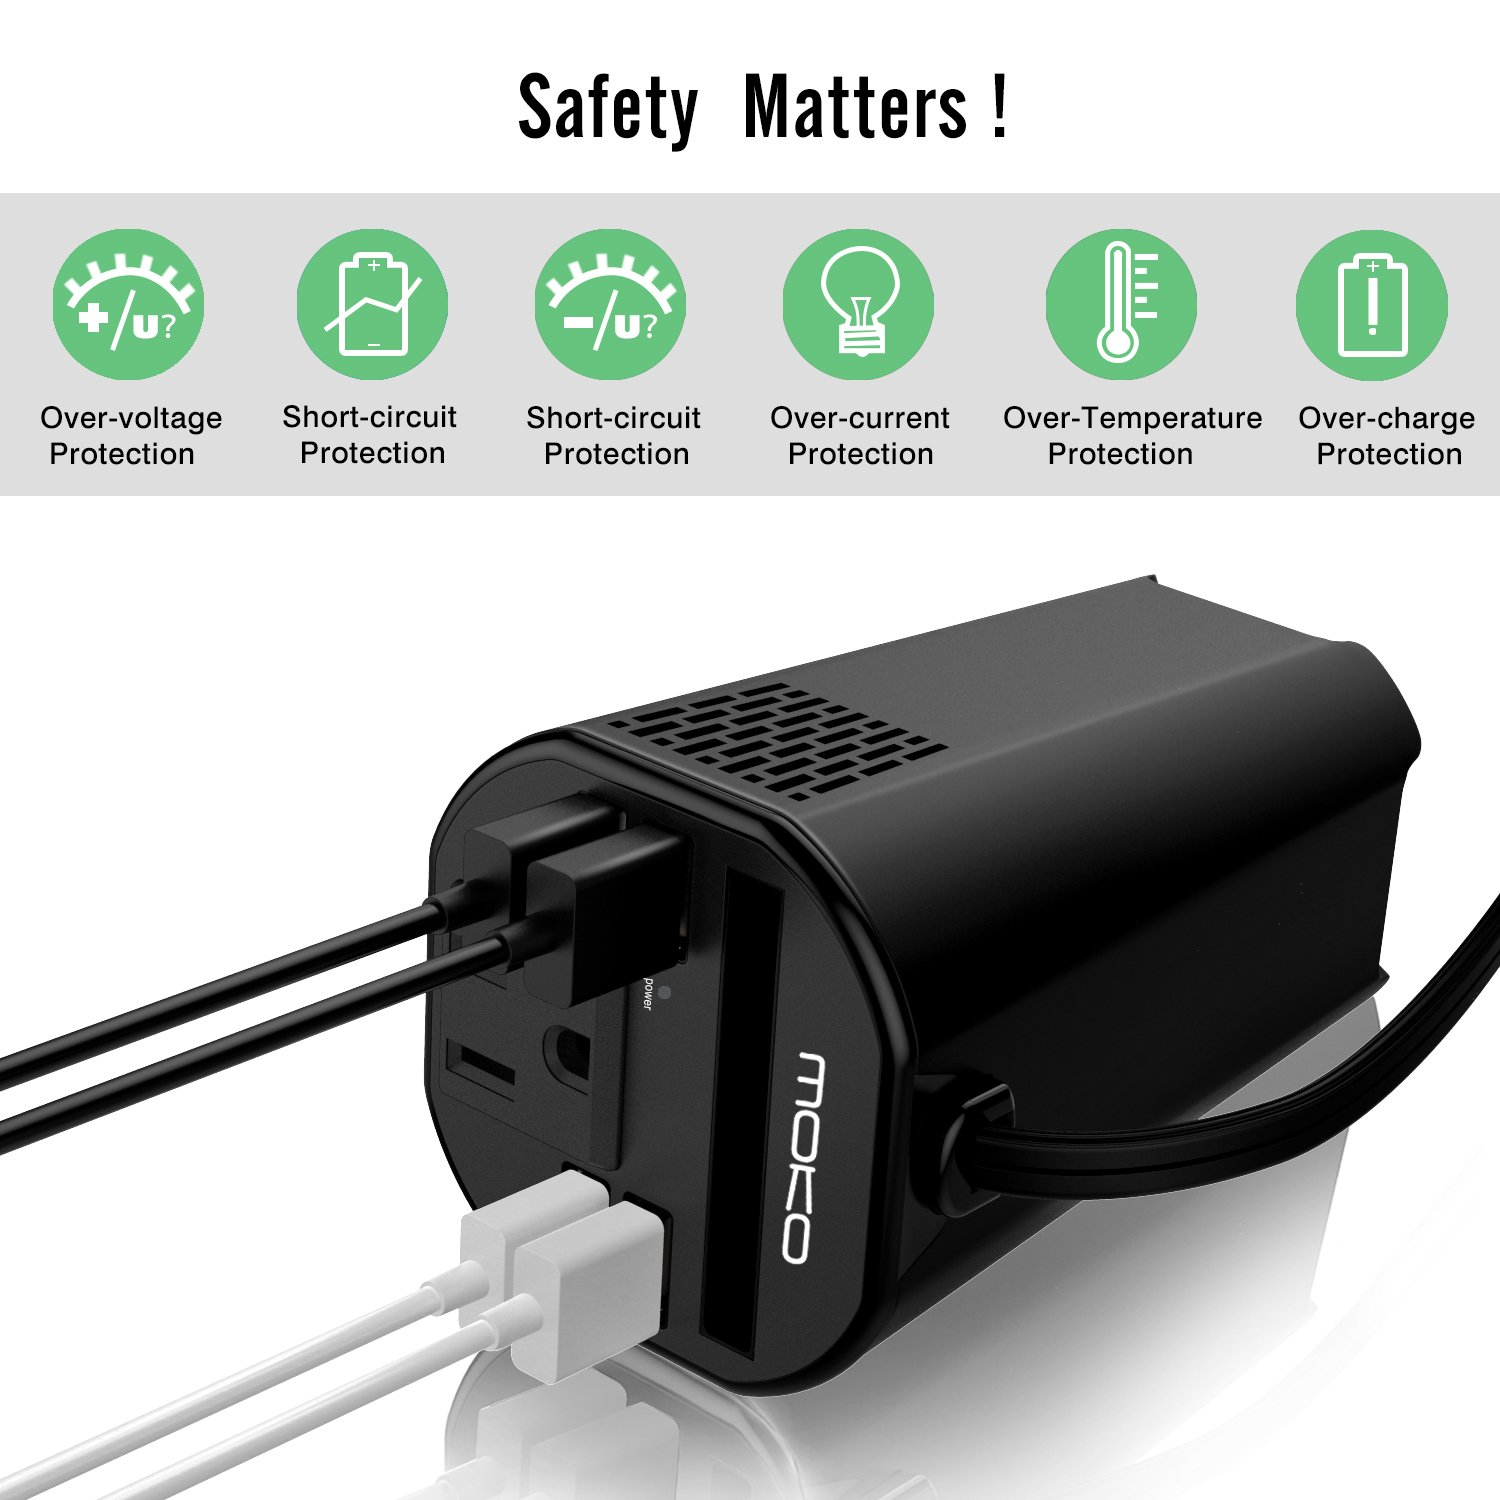 MoKo 150W Car Power Inverter, DC 12V to 110V AC Outlet Cup Holder Converter Adapter, with 4 USB Port Charger, for iPhone X/8/8 Plus, MacBook, iPad Pro, Chromebook, Galaxy S8 and etc. (Black) by MoKo (Image #6)